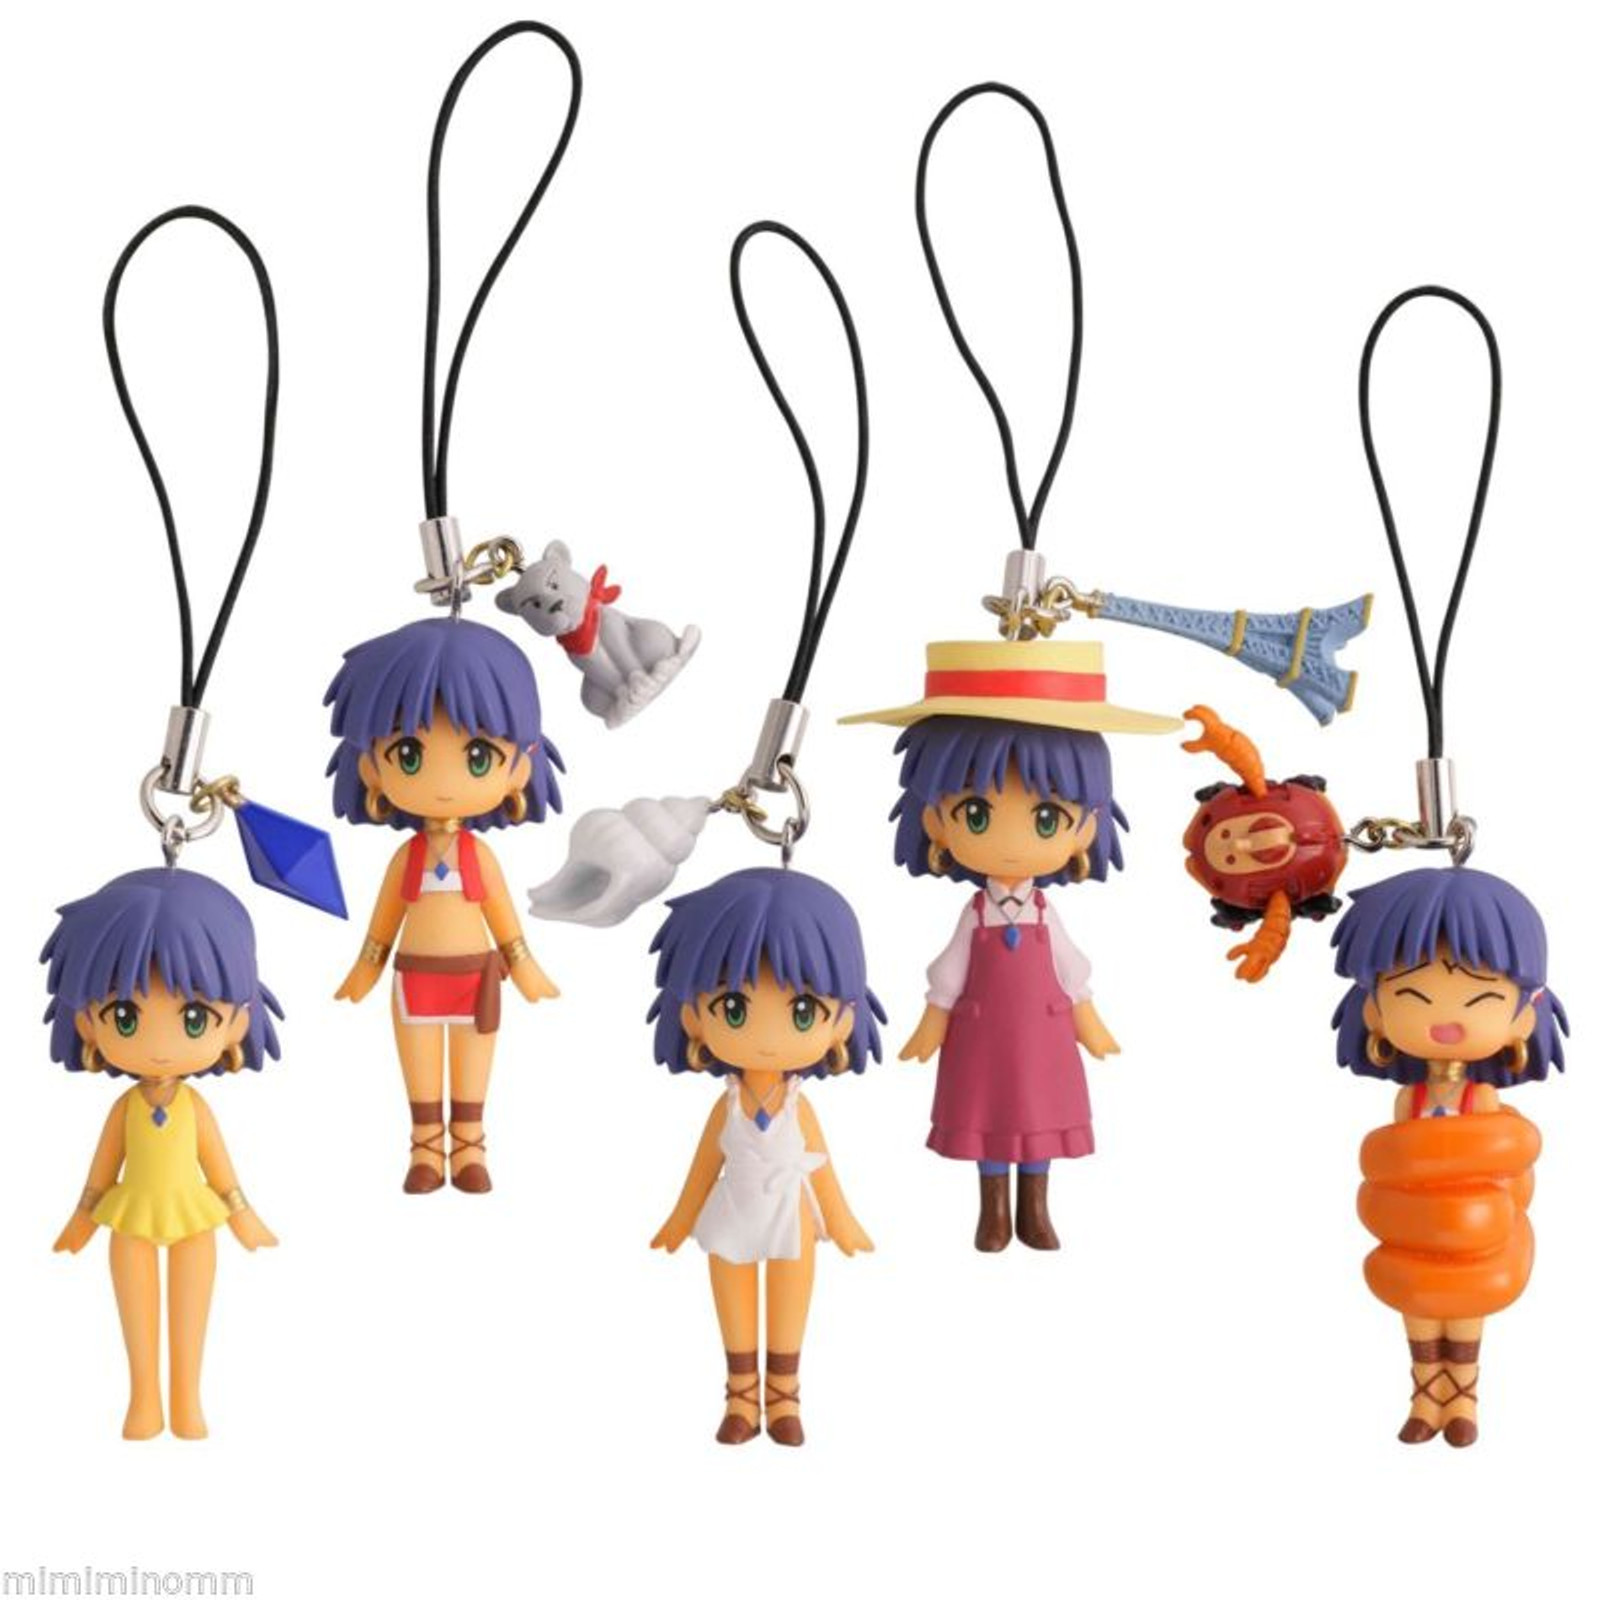 Set of 5 Nadia The Secret of Blue Water Capsule Omikuji Figure Strap JAPAN ANIME